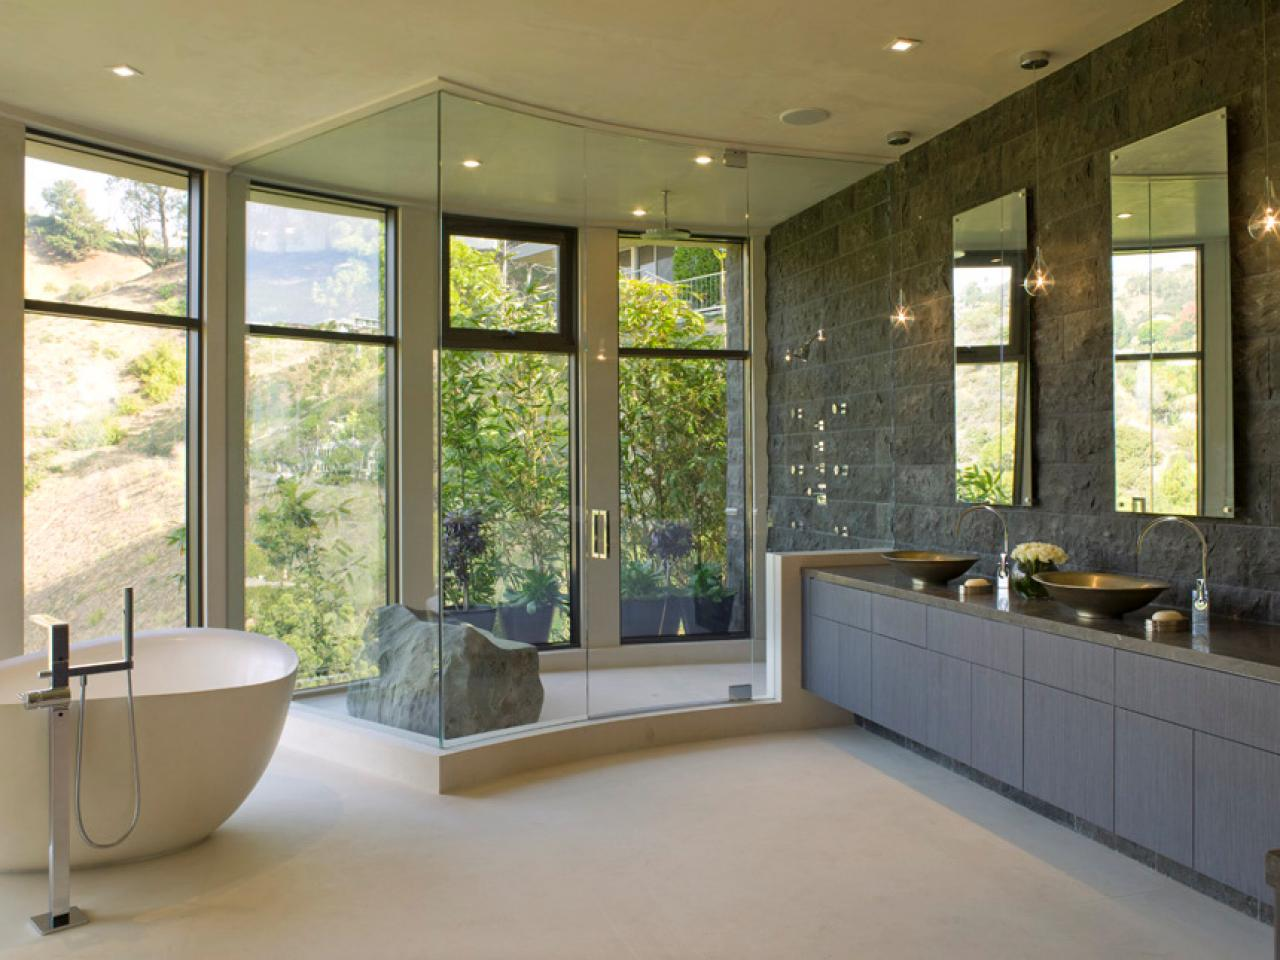 Bathroom Design Easy To Clean traditional bathroom designs: pictures & ideas from hgtv | hgtv